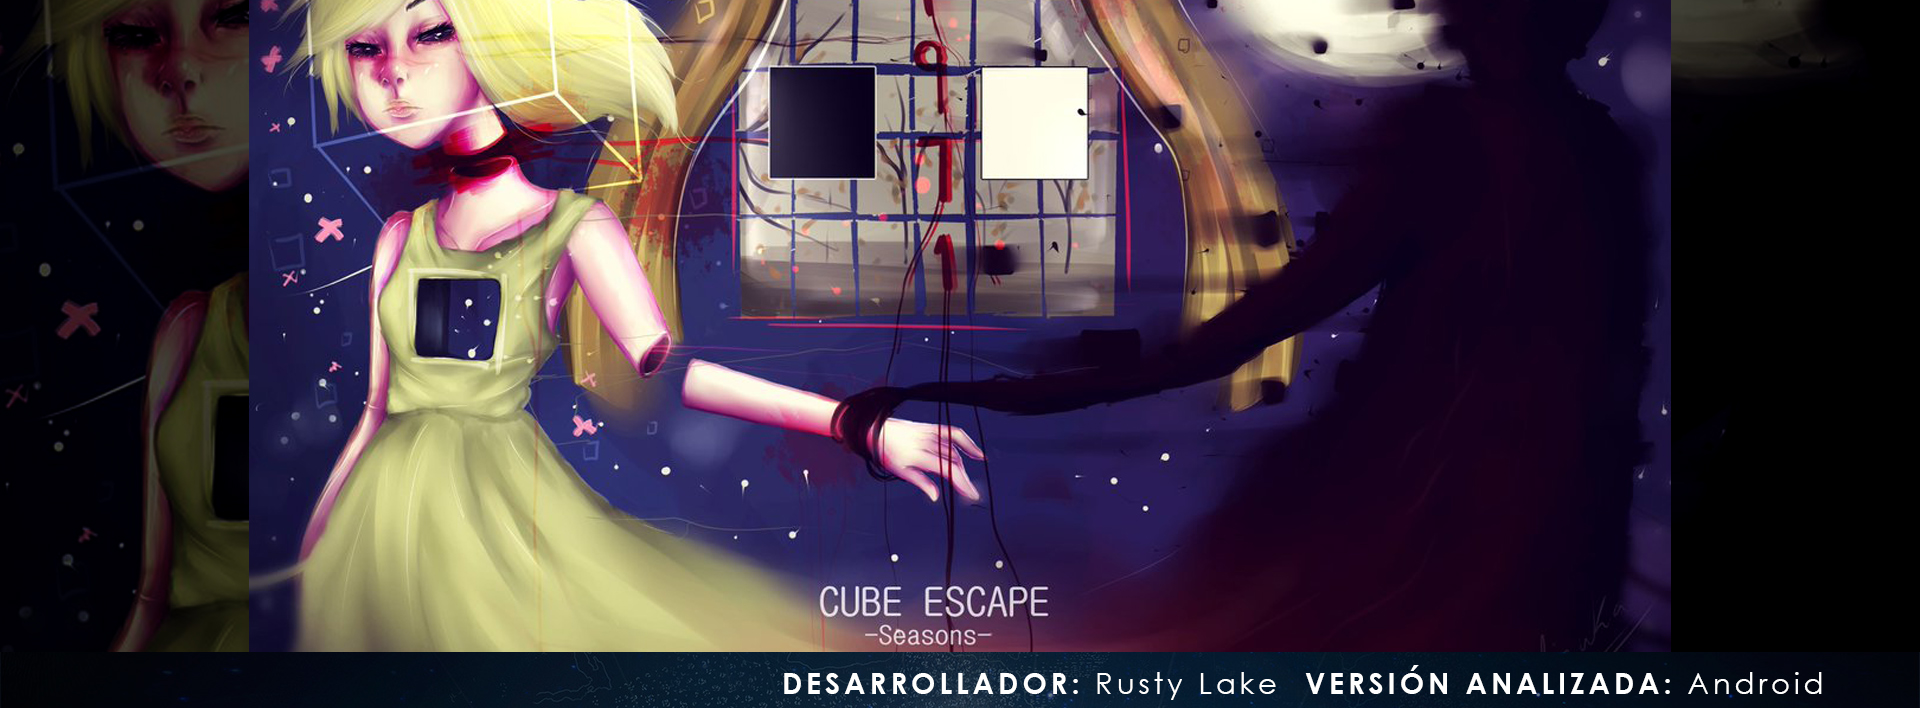 cube escape cab